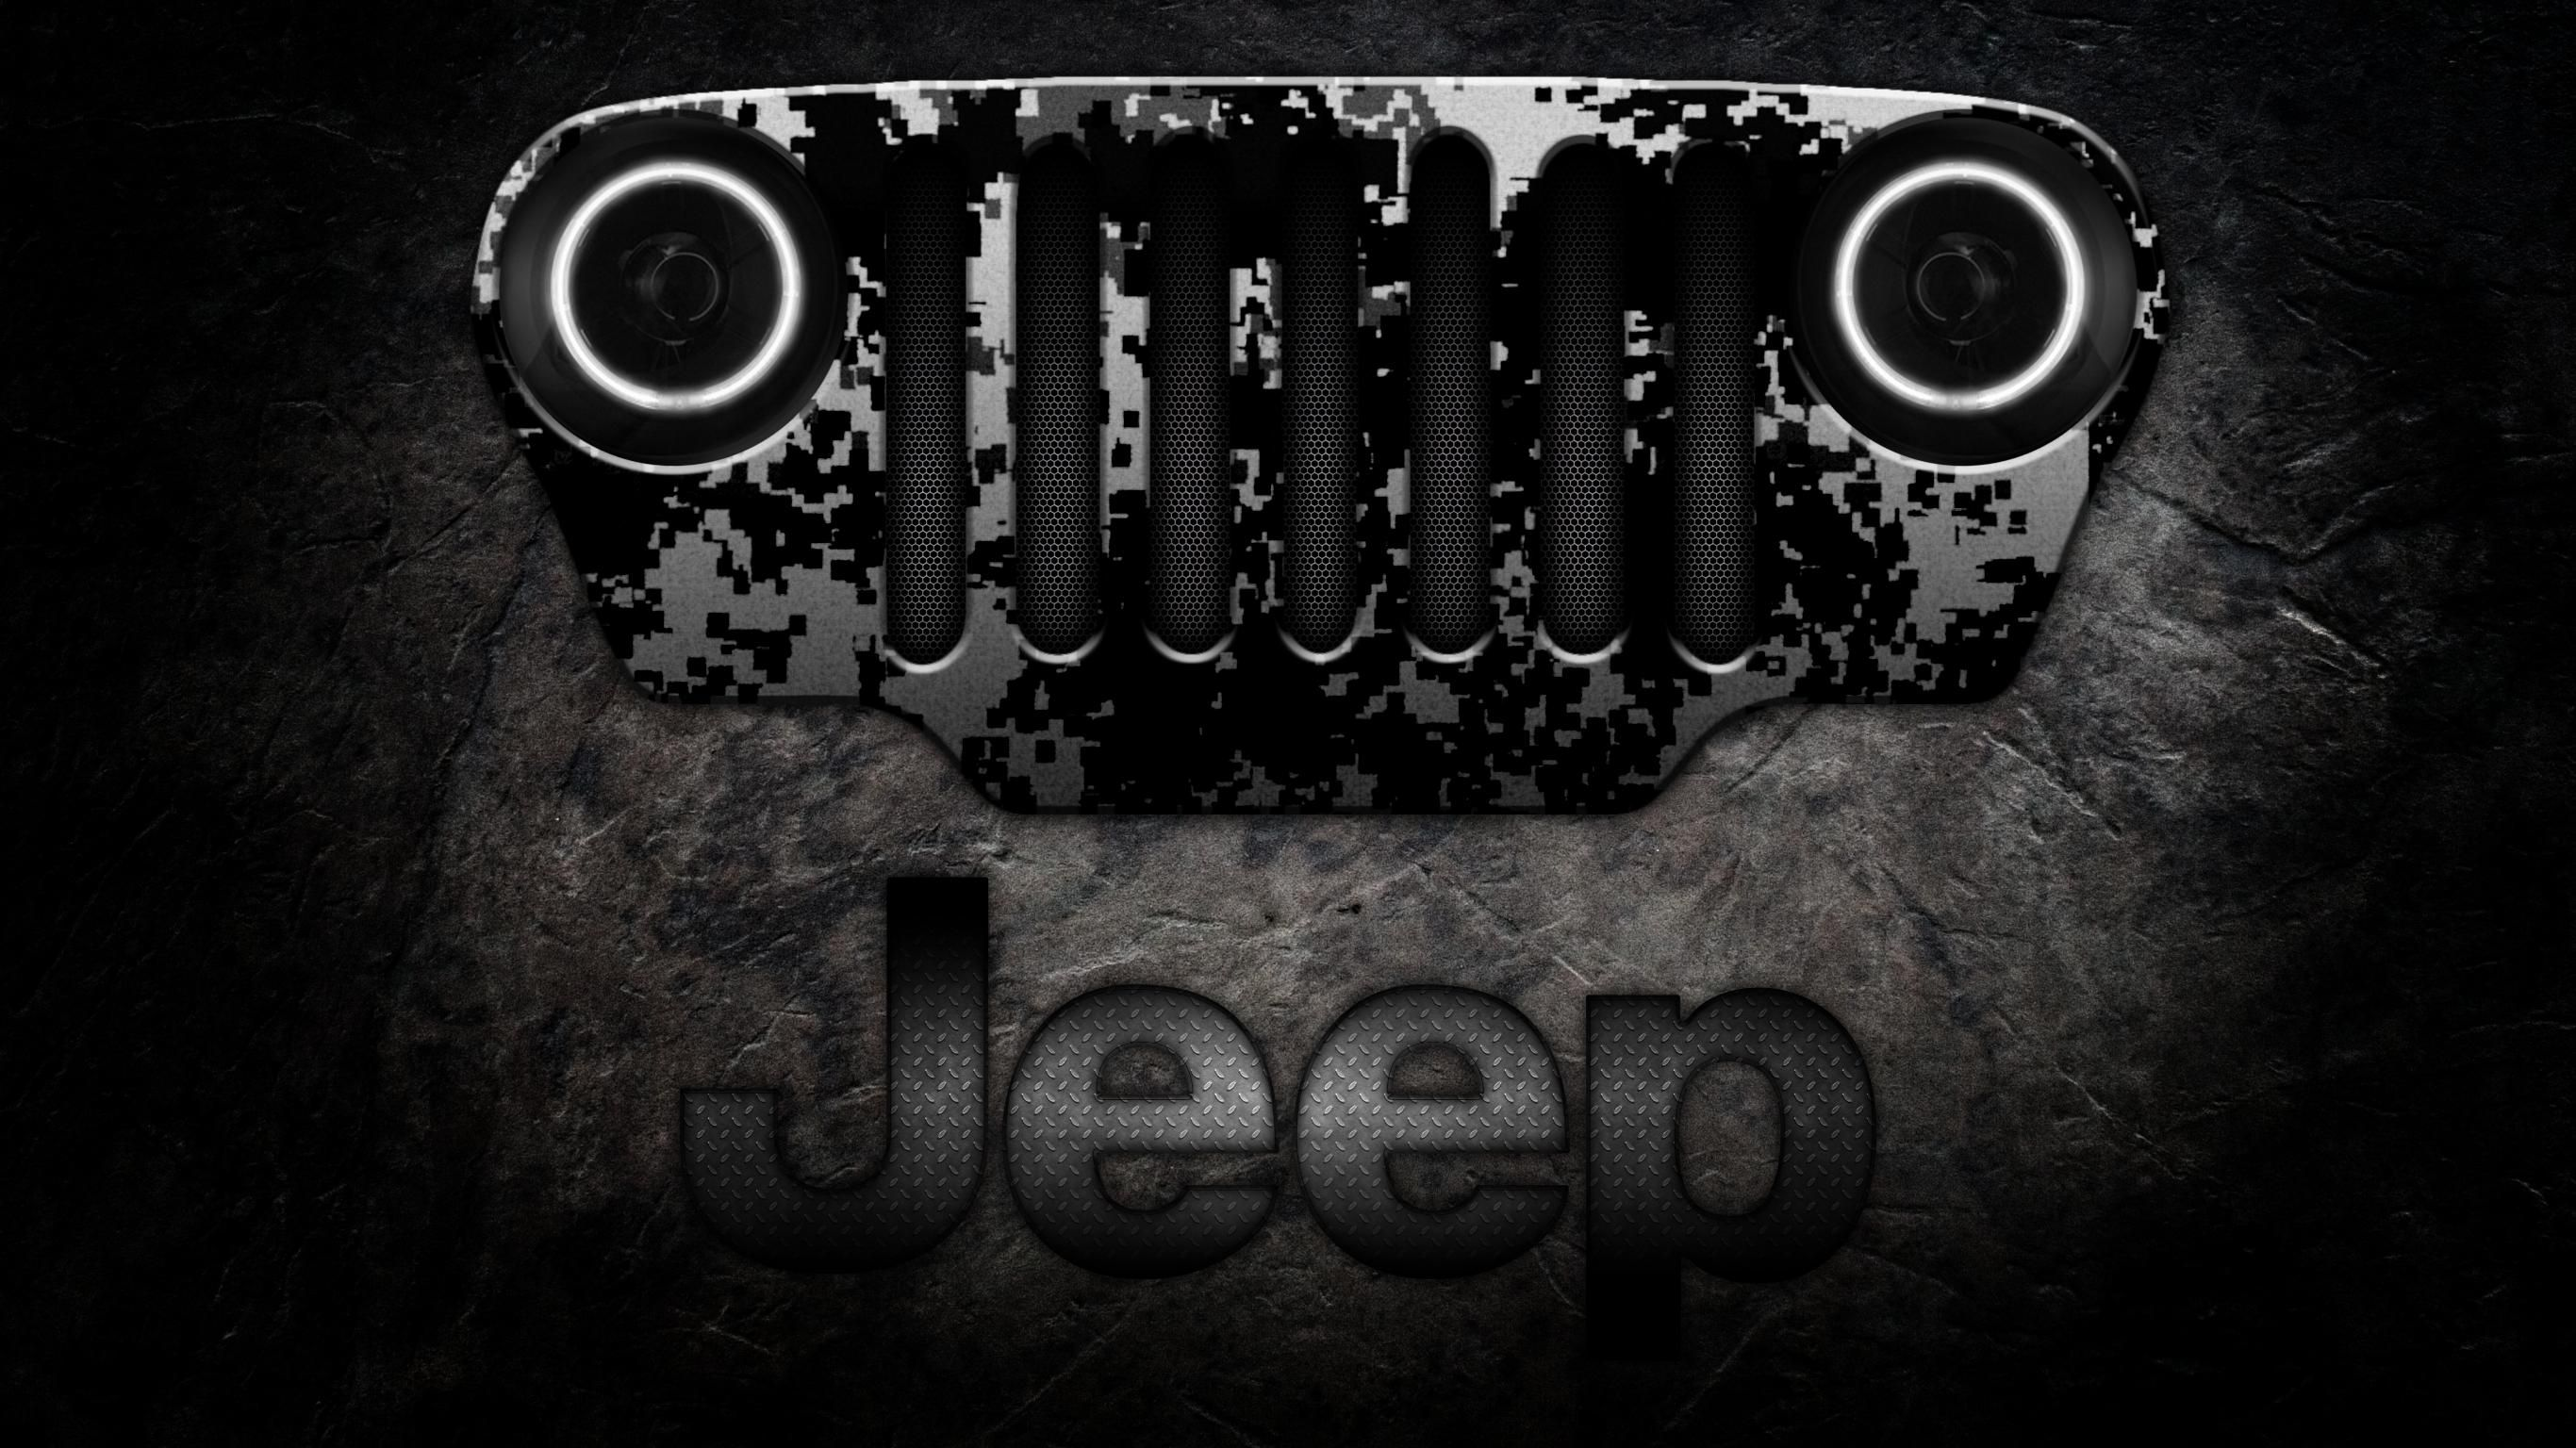 Jeep Logo Wallpapers Wallpaper Cave Jeep Wallpaper Jeep Jeep Wrangler